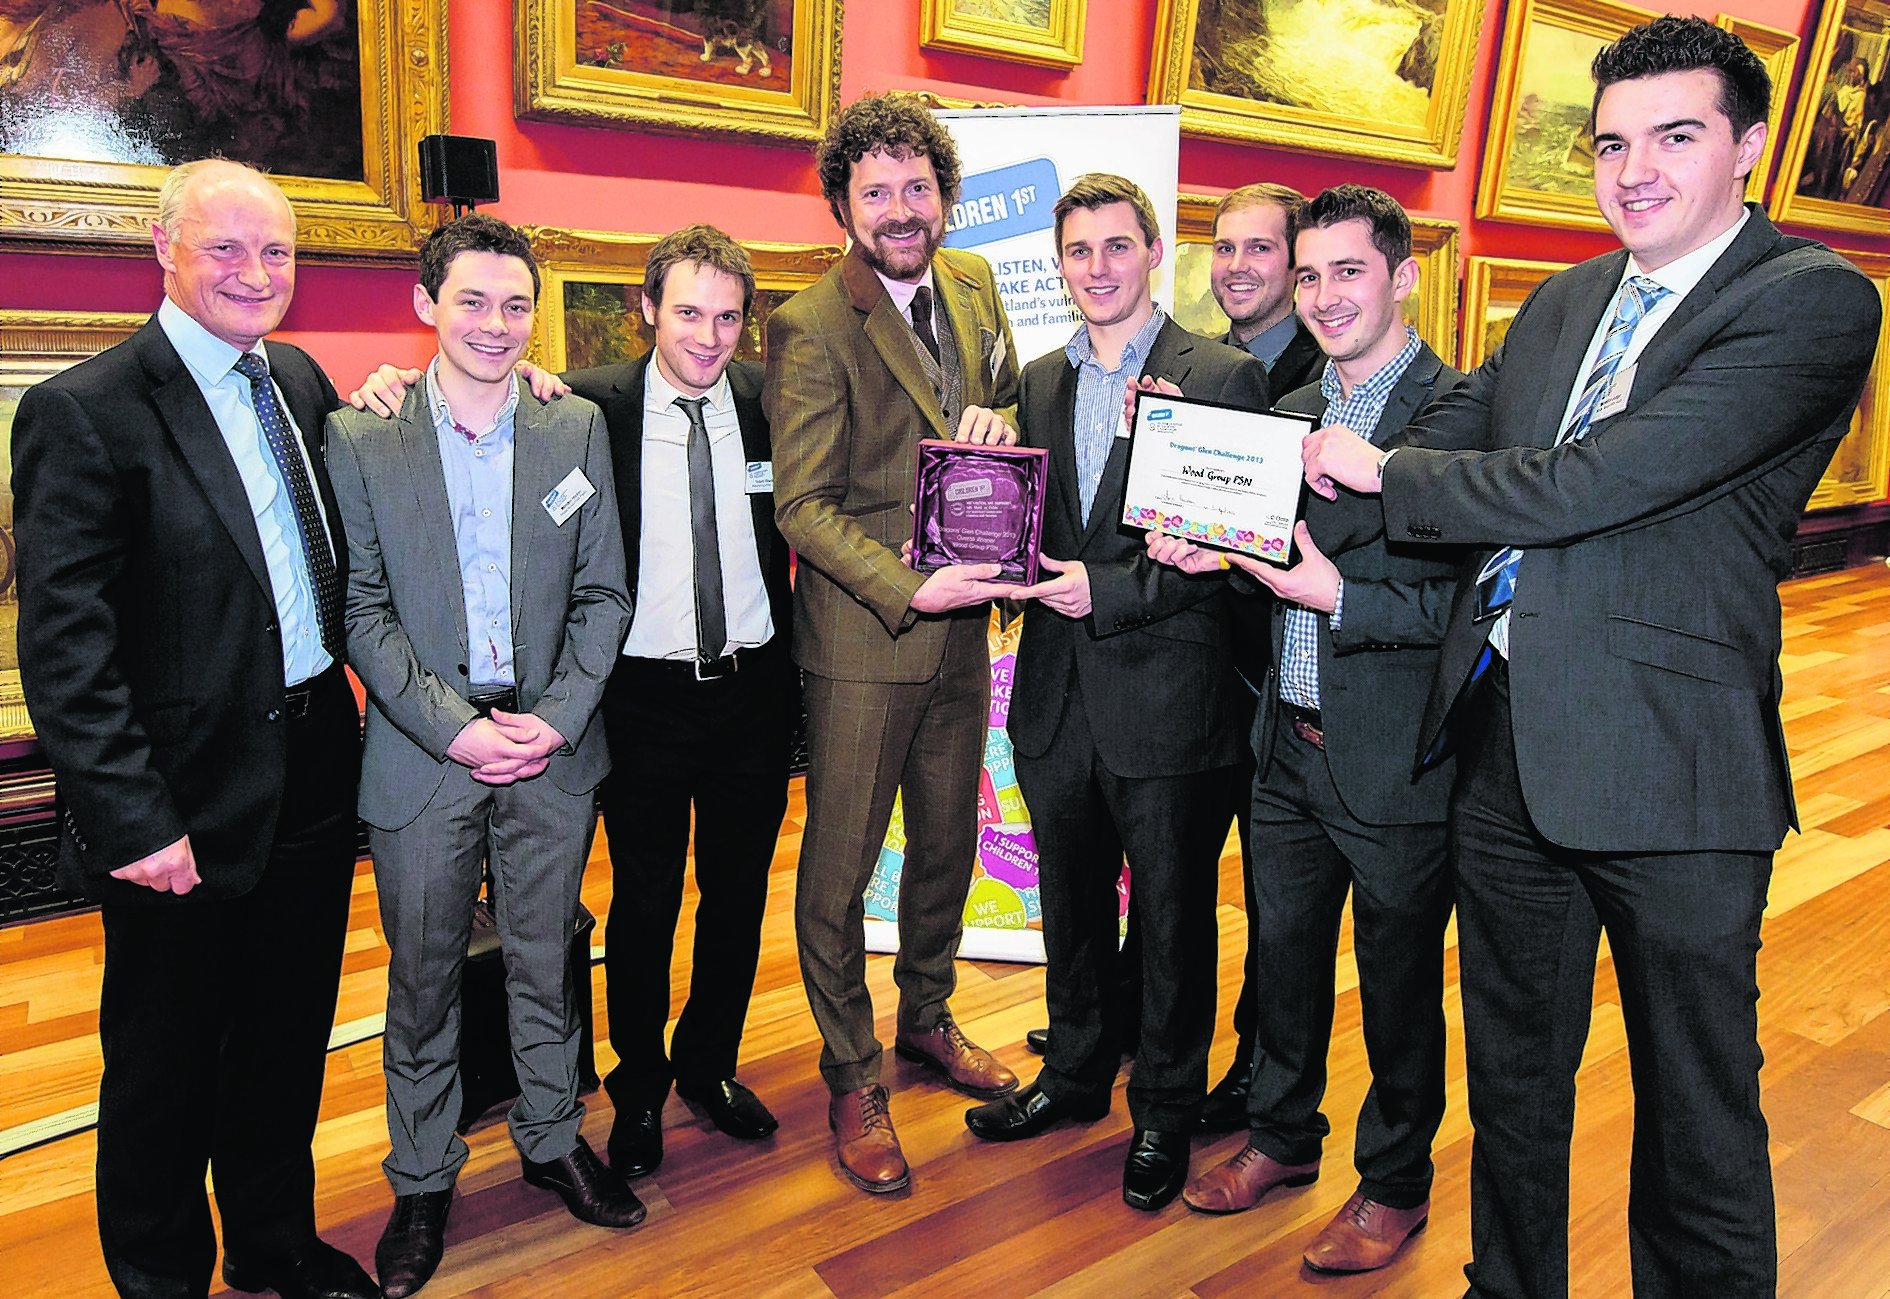 Chris van der Kuyl, Dundee Dragon and Chairman of 4J Studios, presents the Most Money Raised Award trophy and framed certificate to the winning team, Wood Group PSN, who raised £21,468.58 by selling a desk calendar. Pic: ASM Media & PR